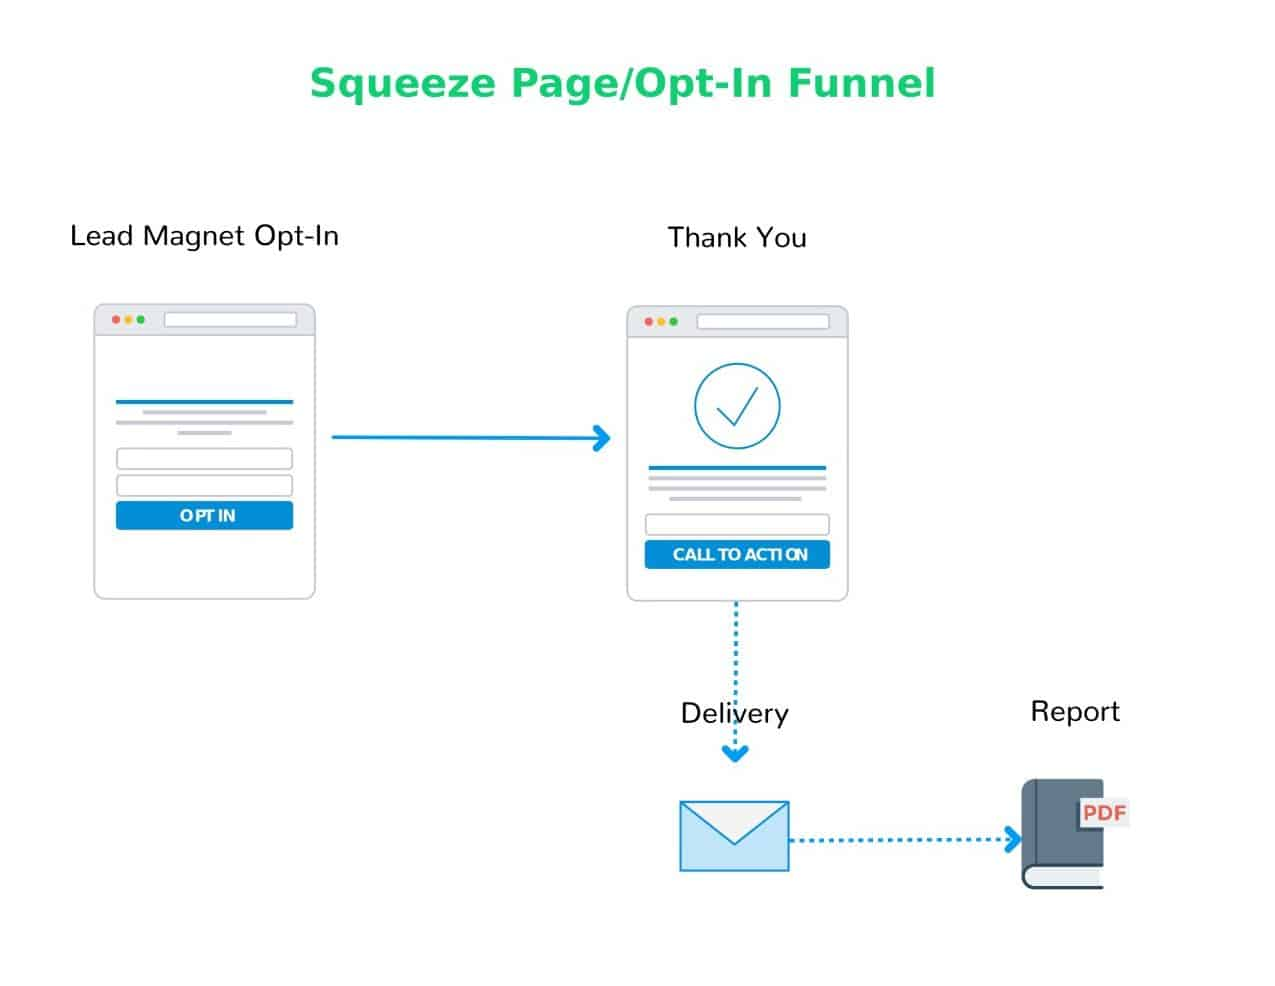 Squeeze Page Opt-In Funnel